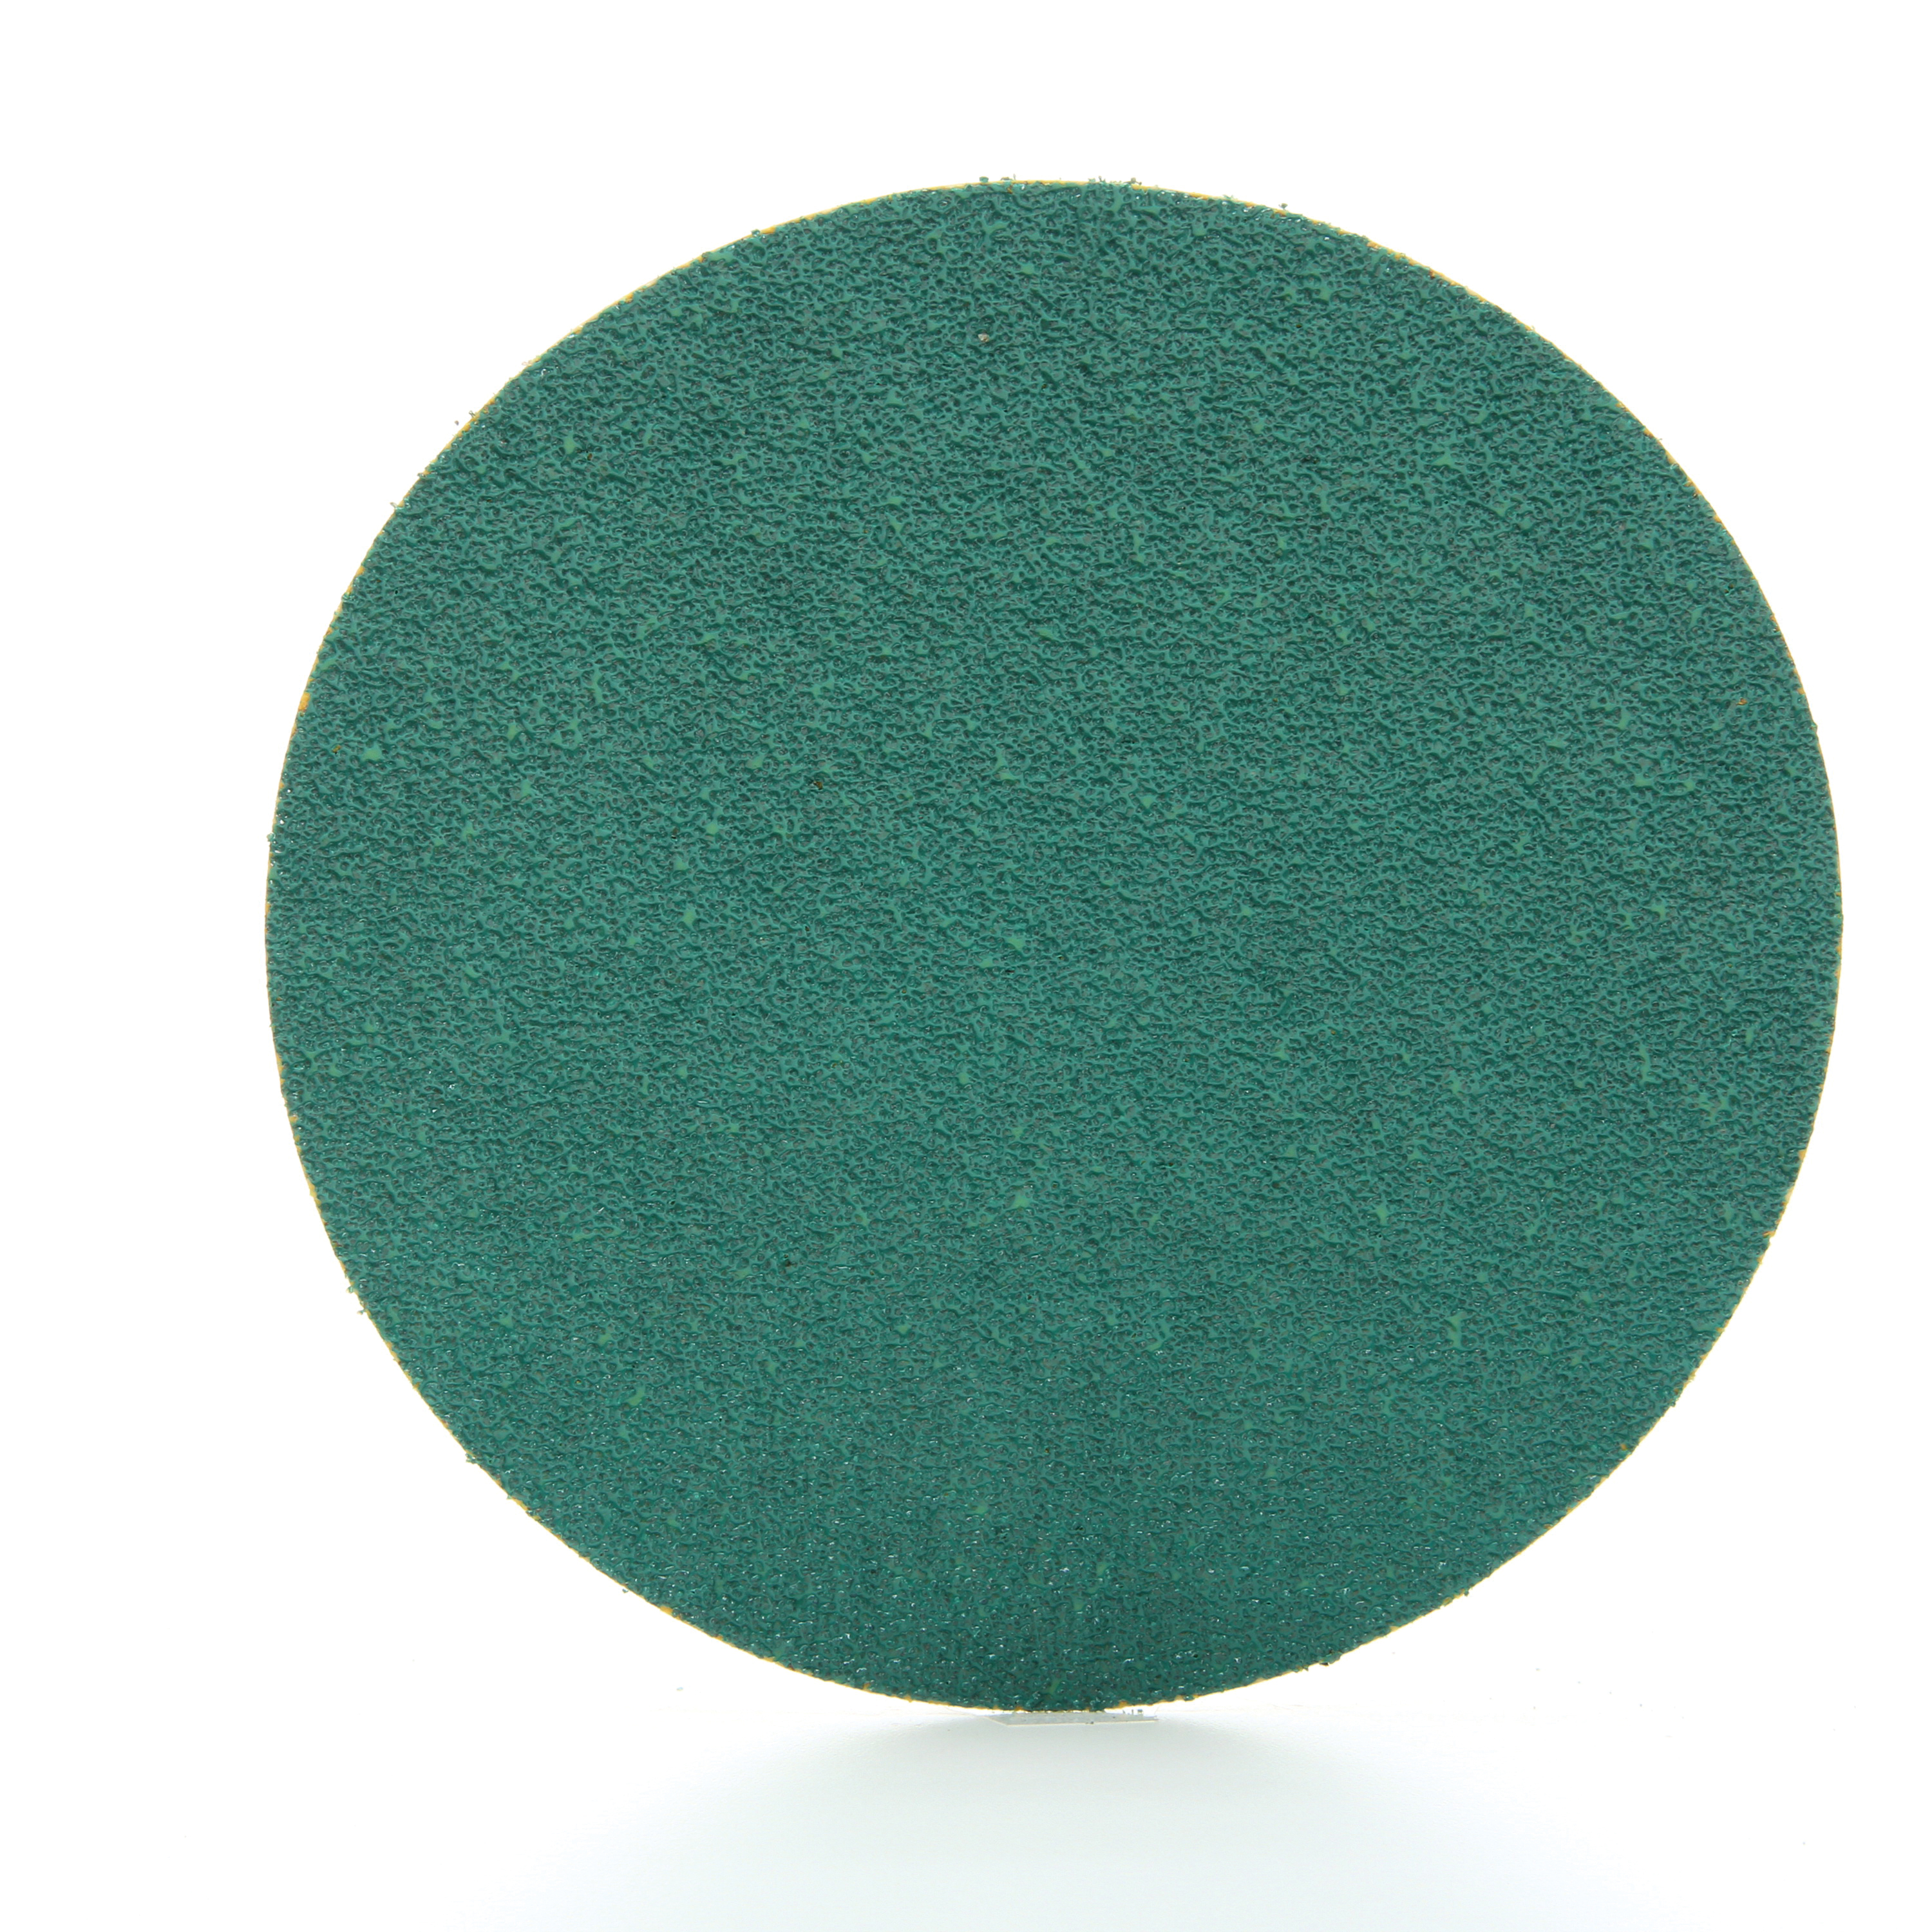 Green Corps™ 051131-01546 251U Open Coated PSA Coated Abrasive Disc Roll, 5 in Dia Disc, 36 Grit, Coarse Grade, Aluminum Oxide Abrasive, Paper Backing